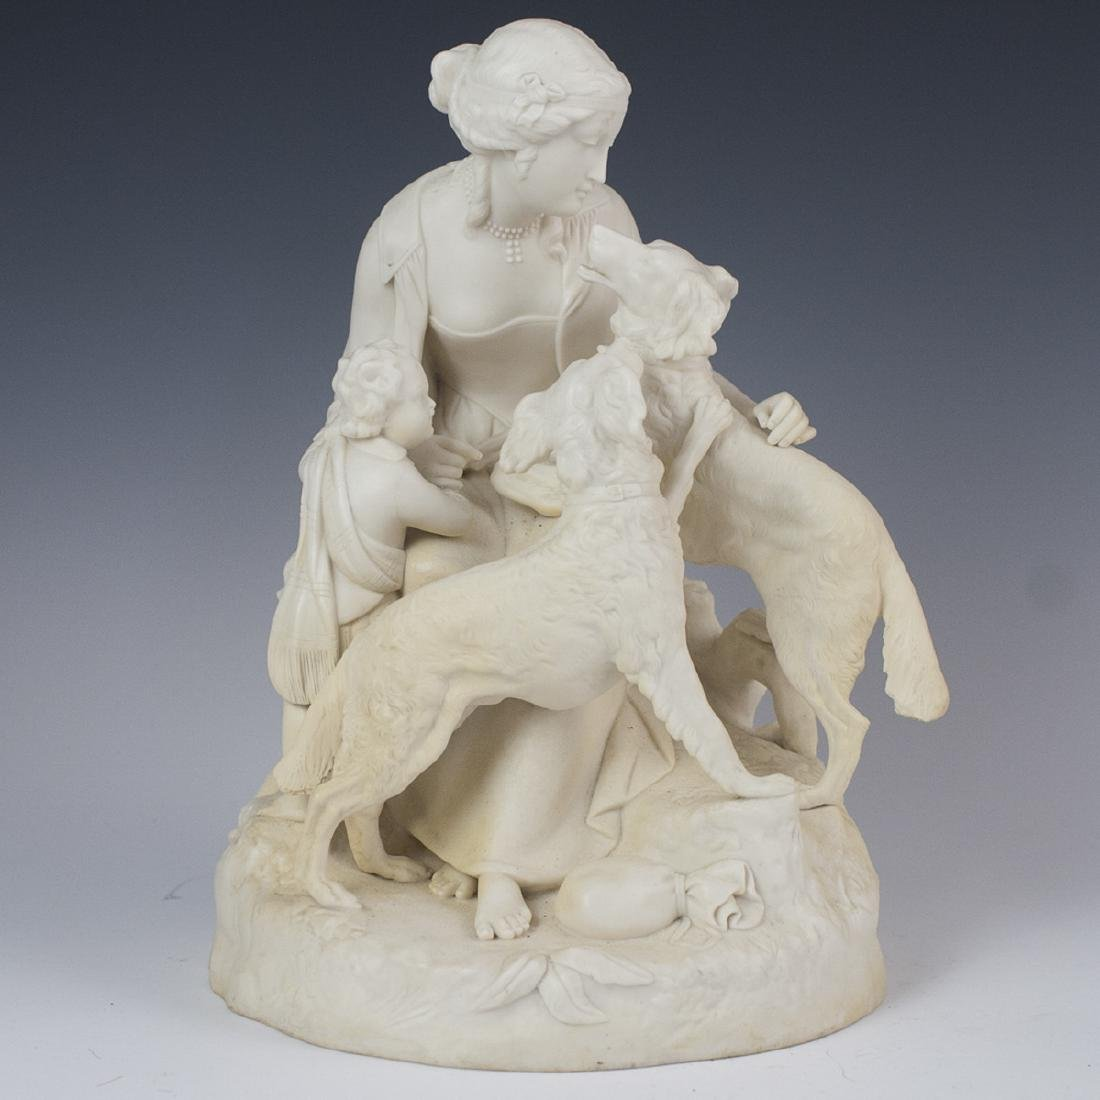 Antique Parian Ware Sculpture